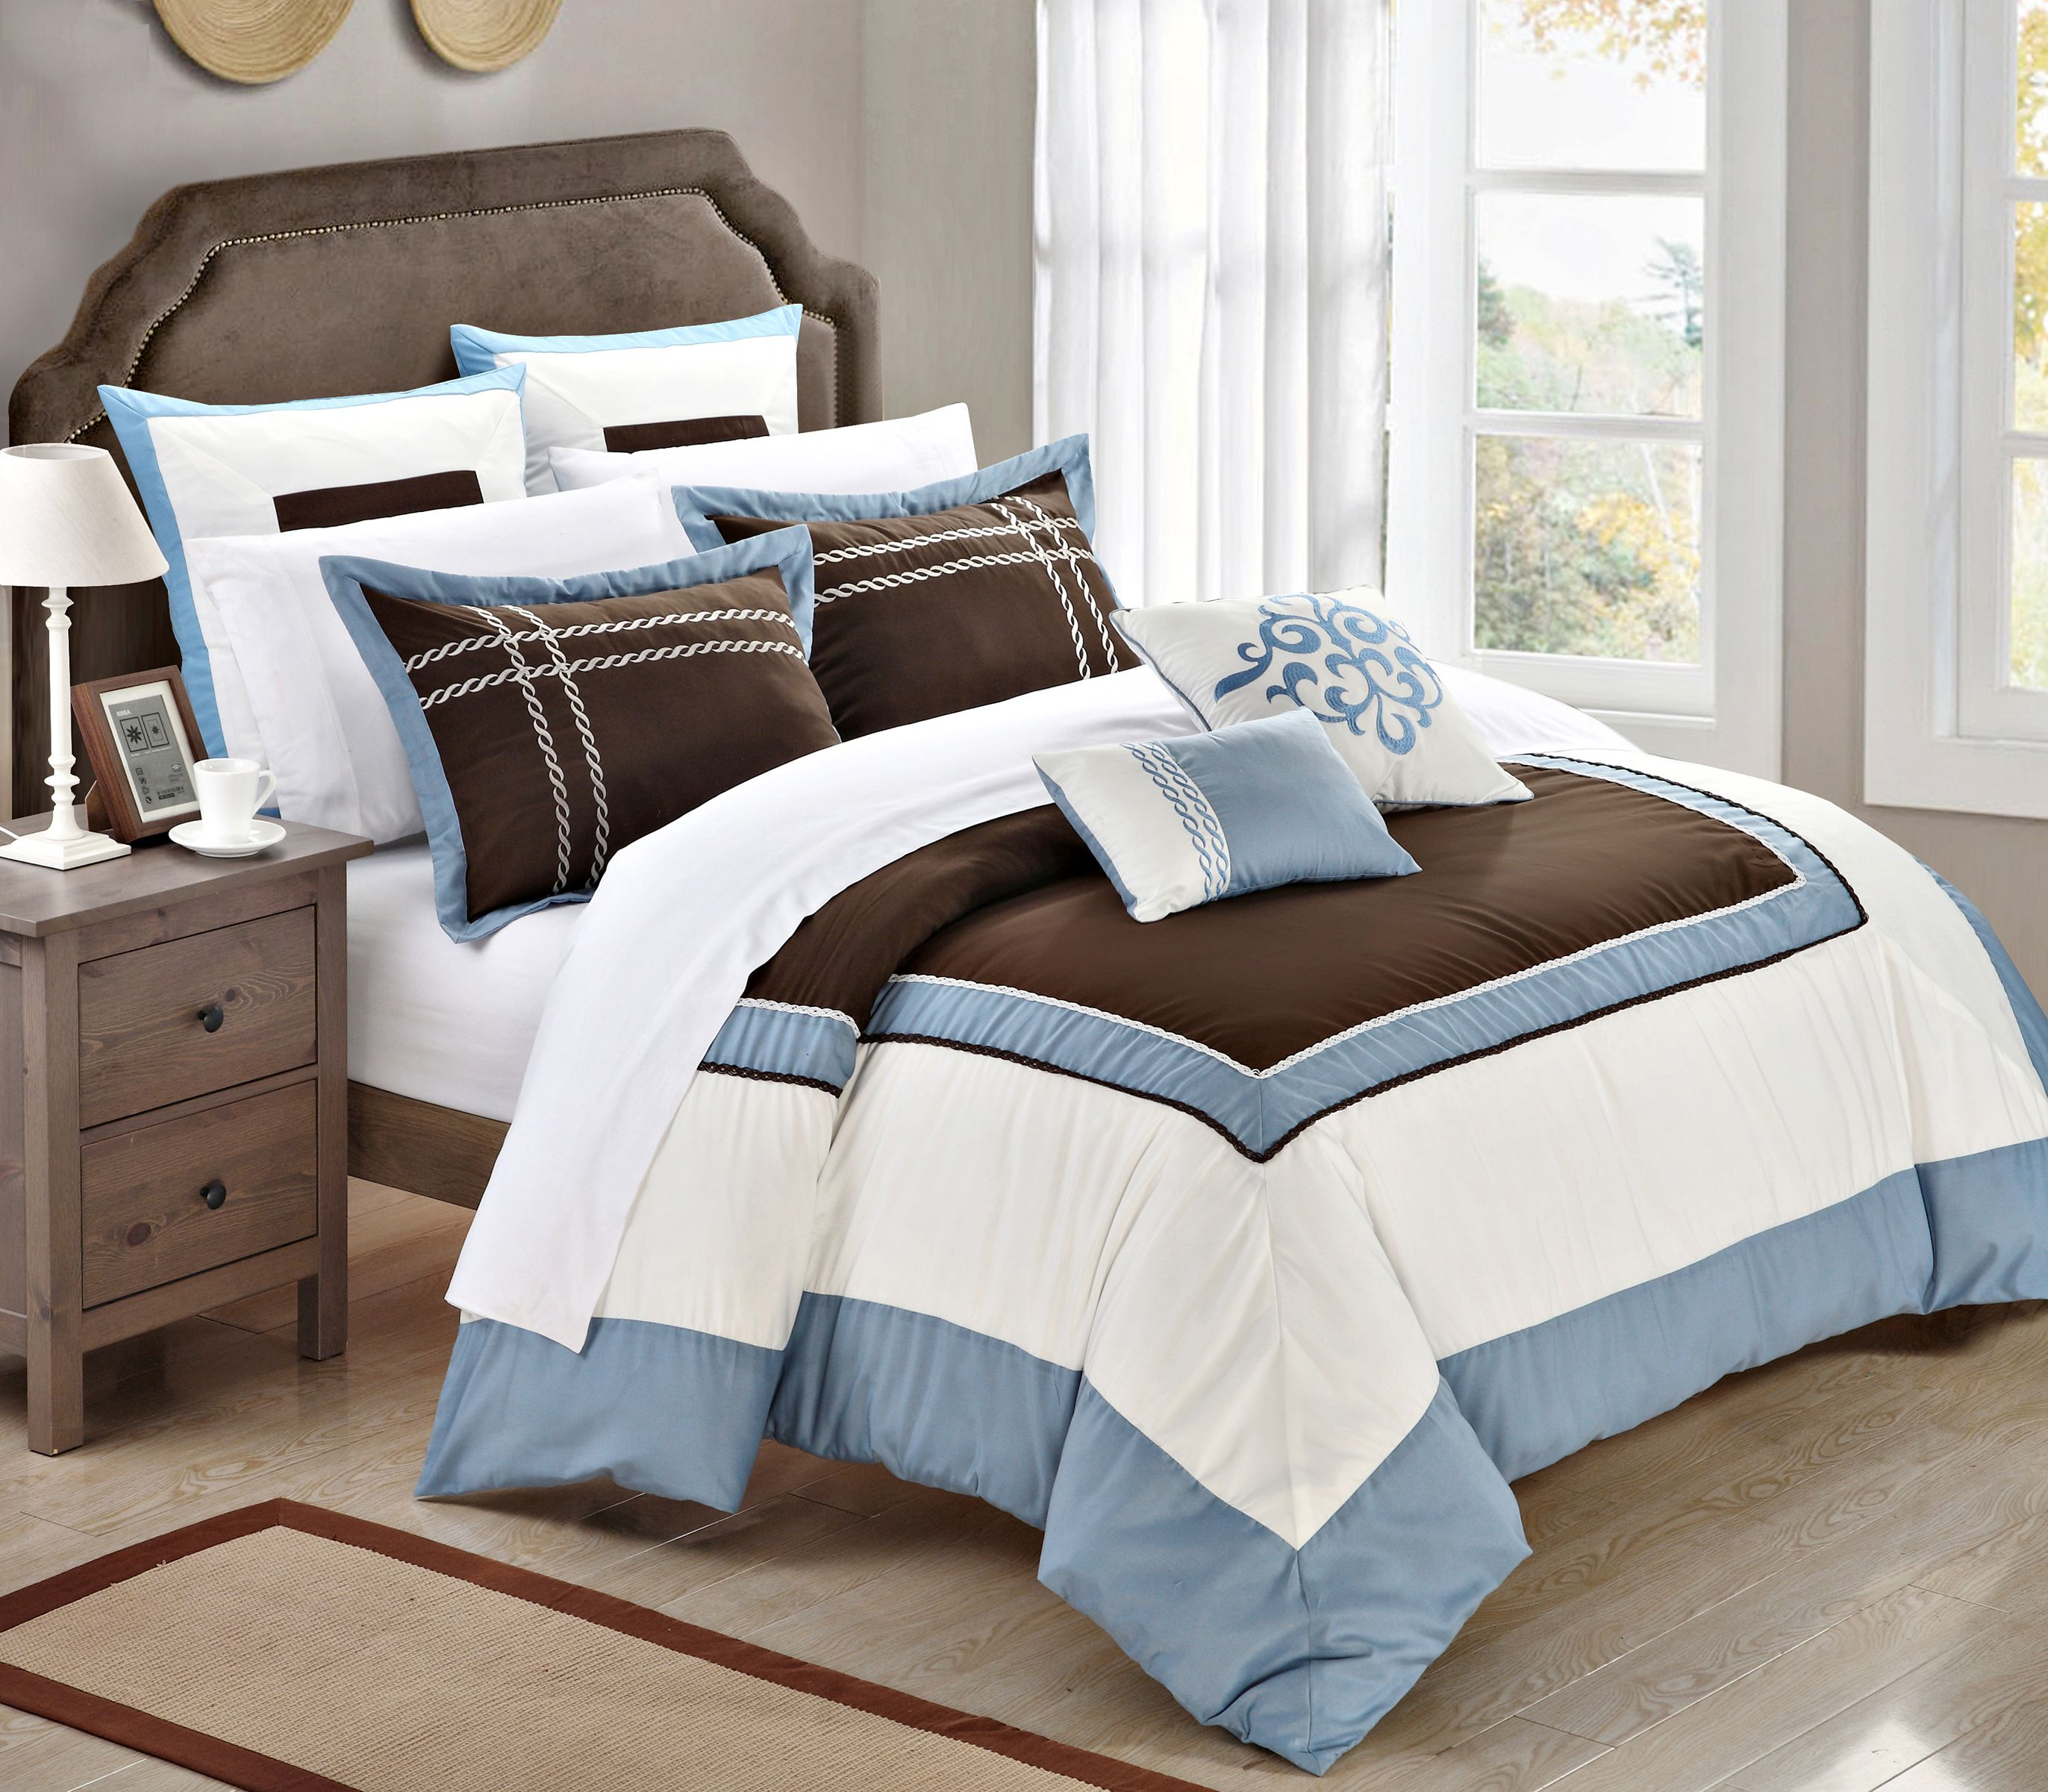 Elegant and Contemporary detailed 7piece Comforter Set